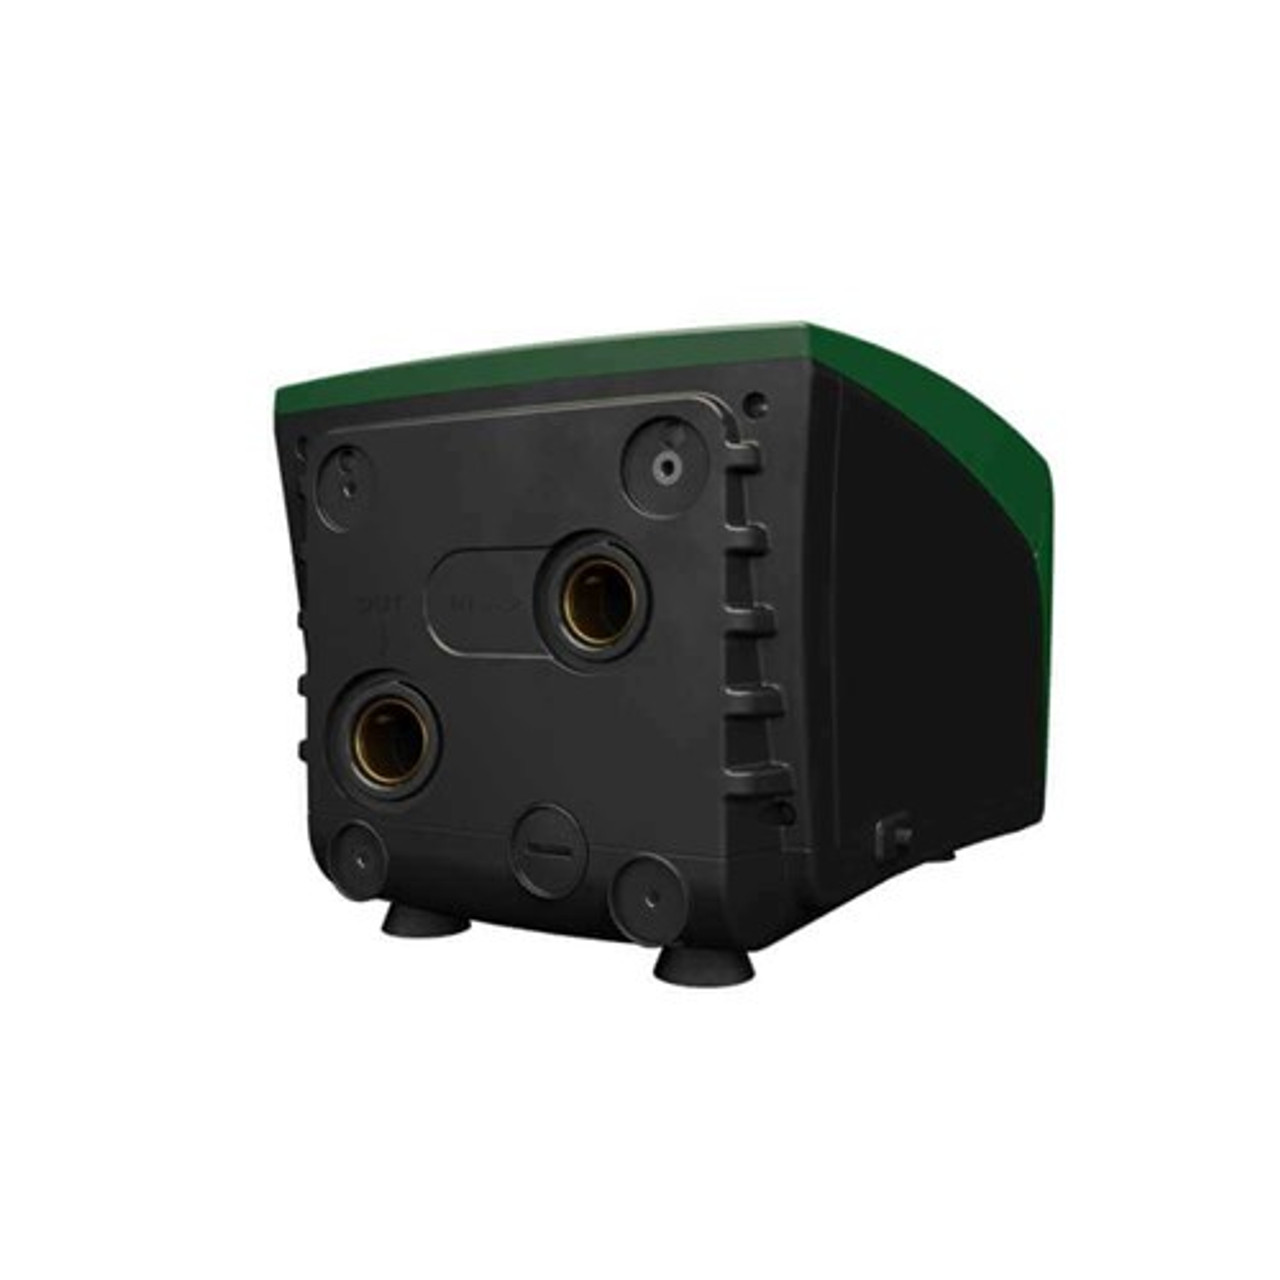 Dab Esybox min variable speed drive pump unit inlet and outlet view